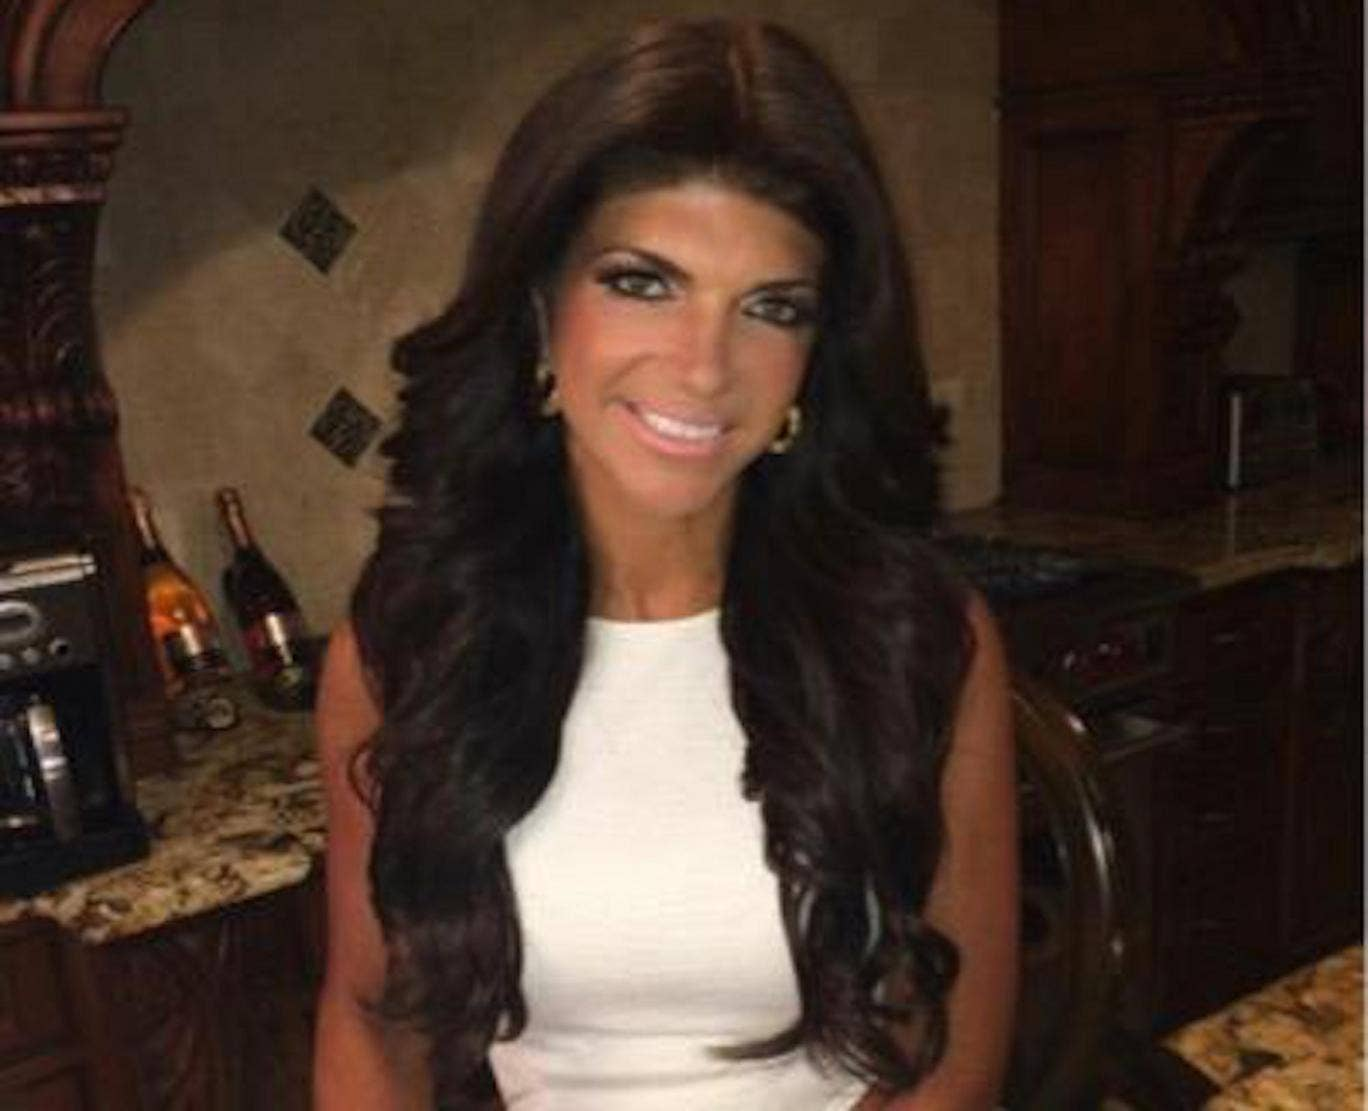 Teresa Guidice, 'Real Housewives of New Jersey' star, is released from jail